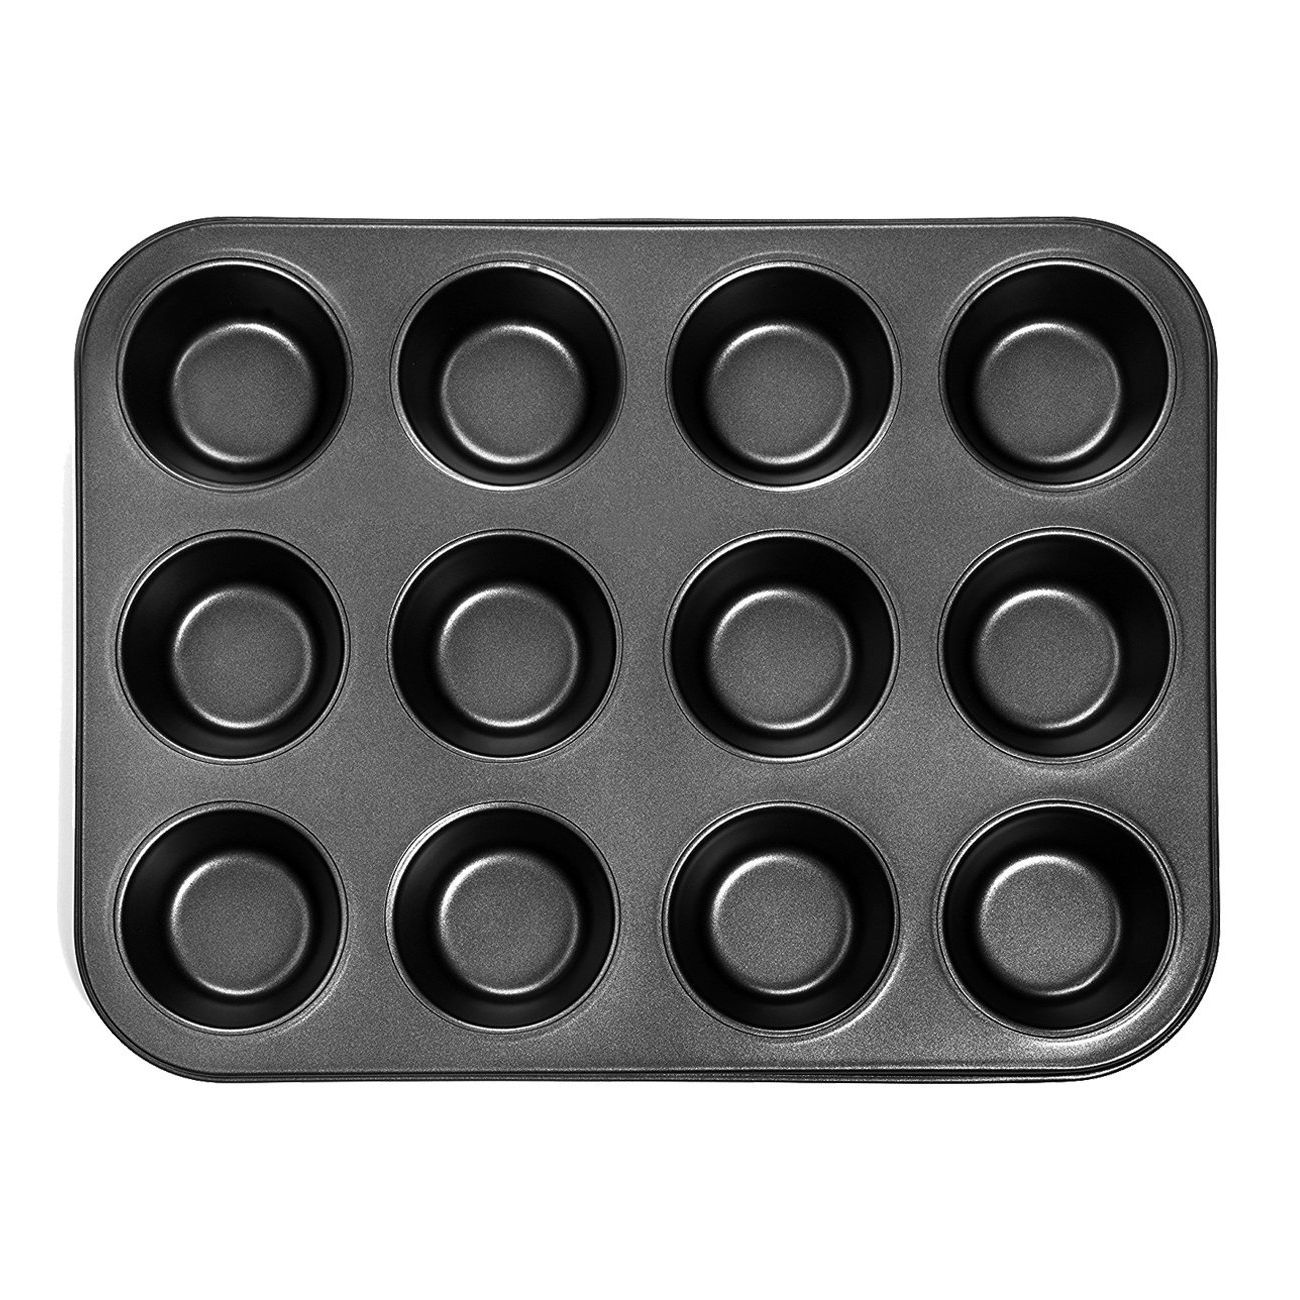 Hot Sale Heavy Duty Carbon Steel Cupcake Baking Tray,12 Mini Cup Cupcake Shaped Cake Pan,nonstick Cupcake Baking Tray, Cupcake